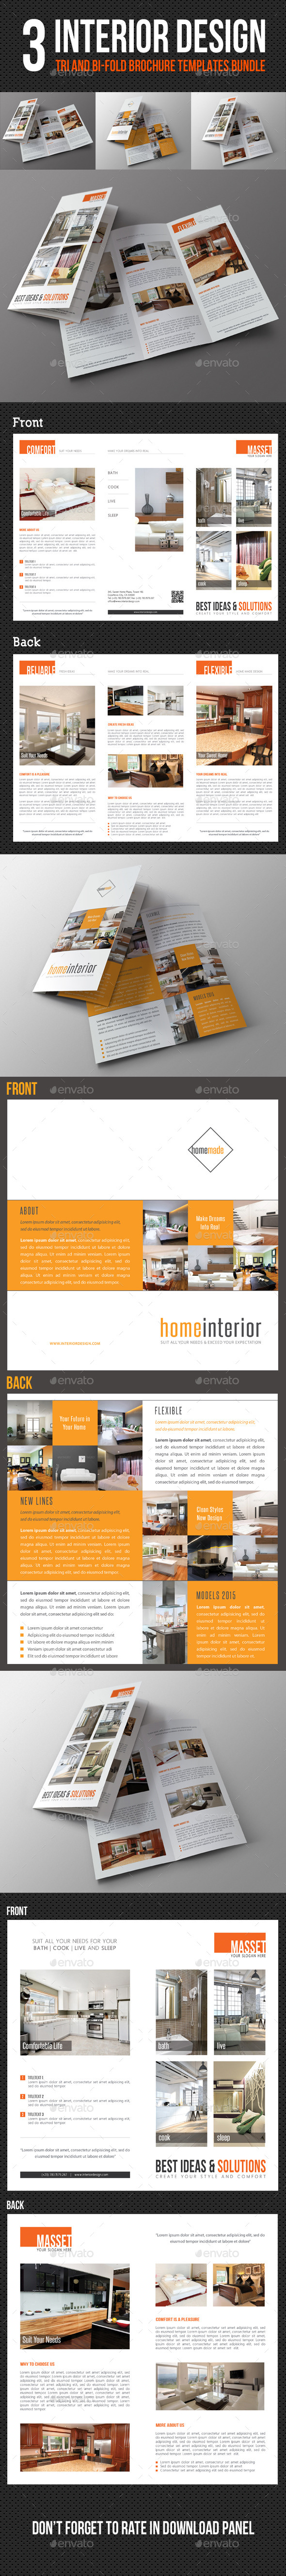 3 in 1 Interior Design Brochure Bundle - Corporate Brochures